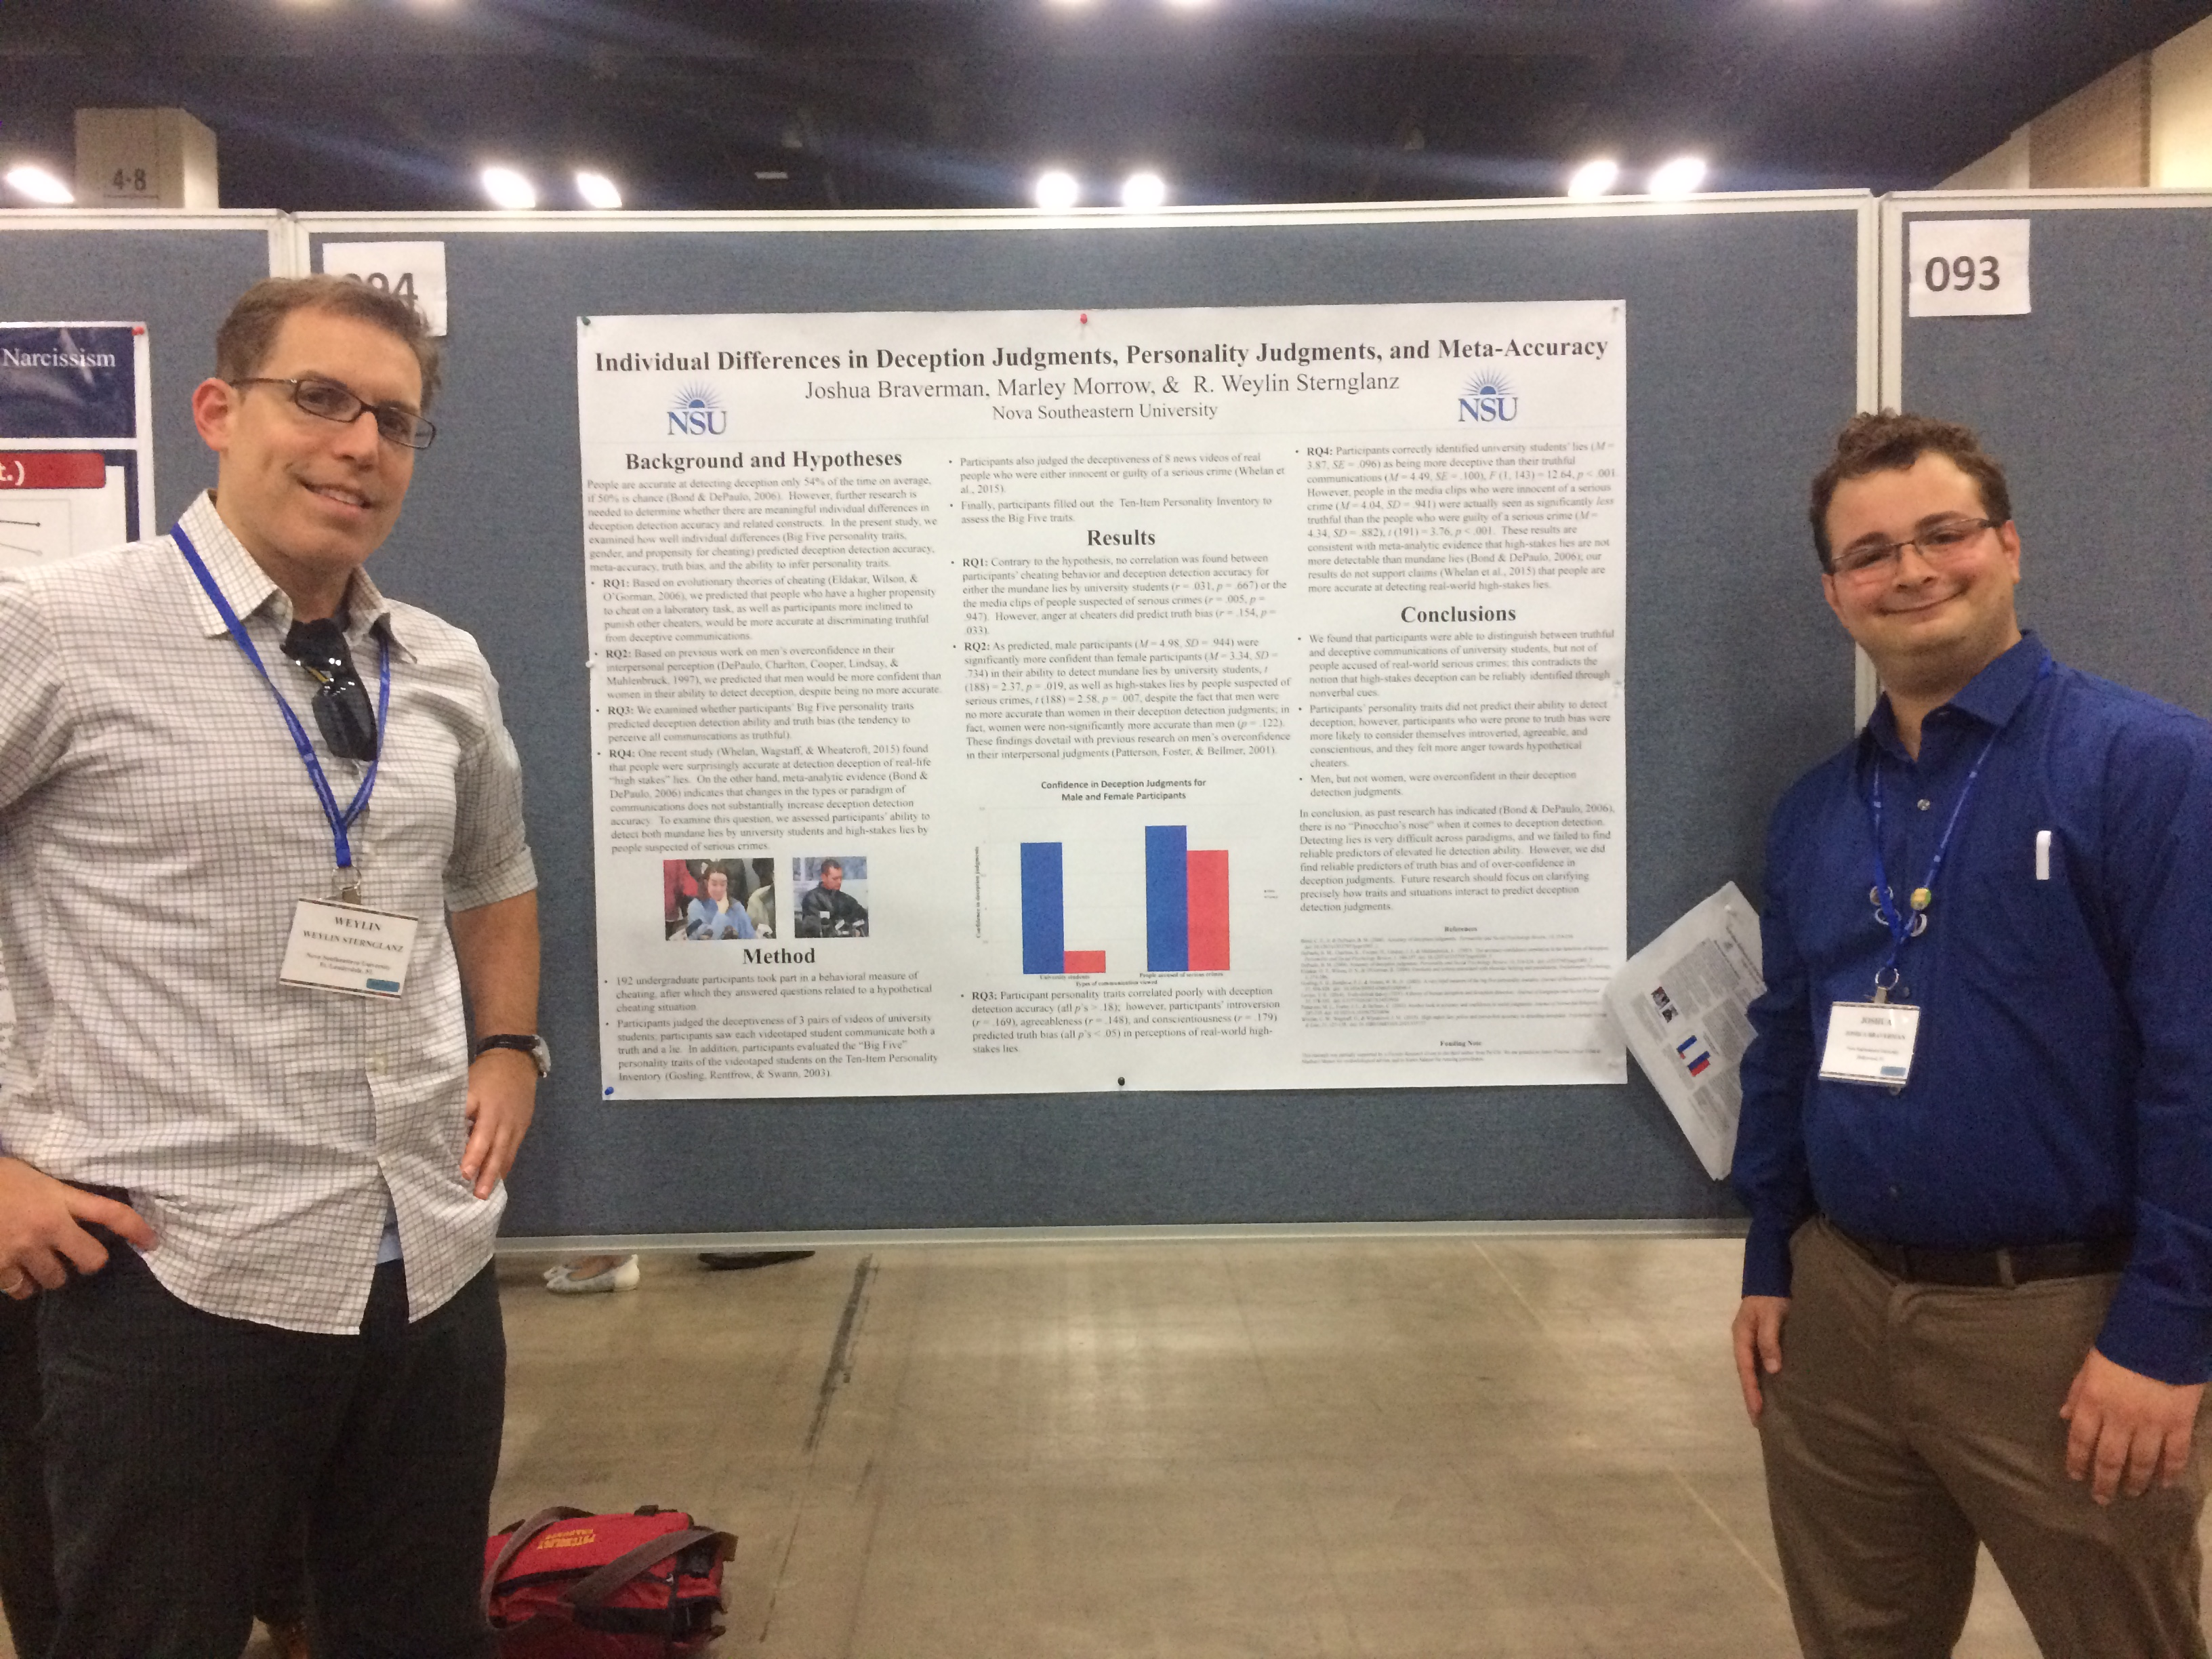 Student Joshua Braverman and Faculty Member Weylin Sternglanz